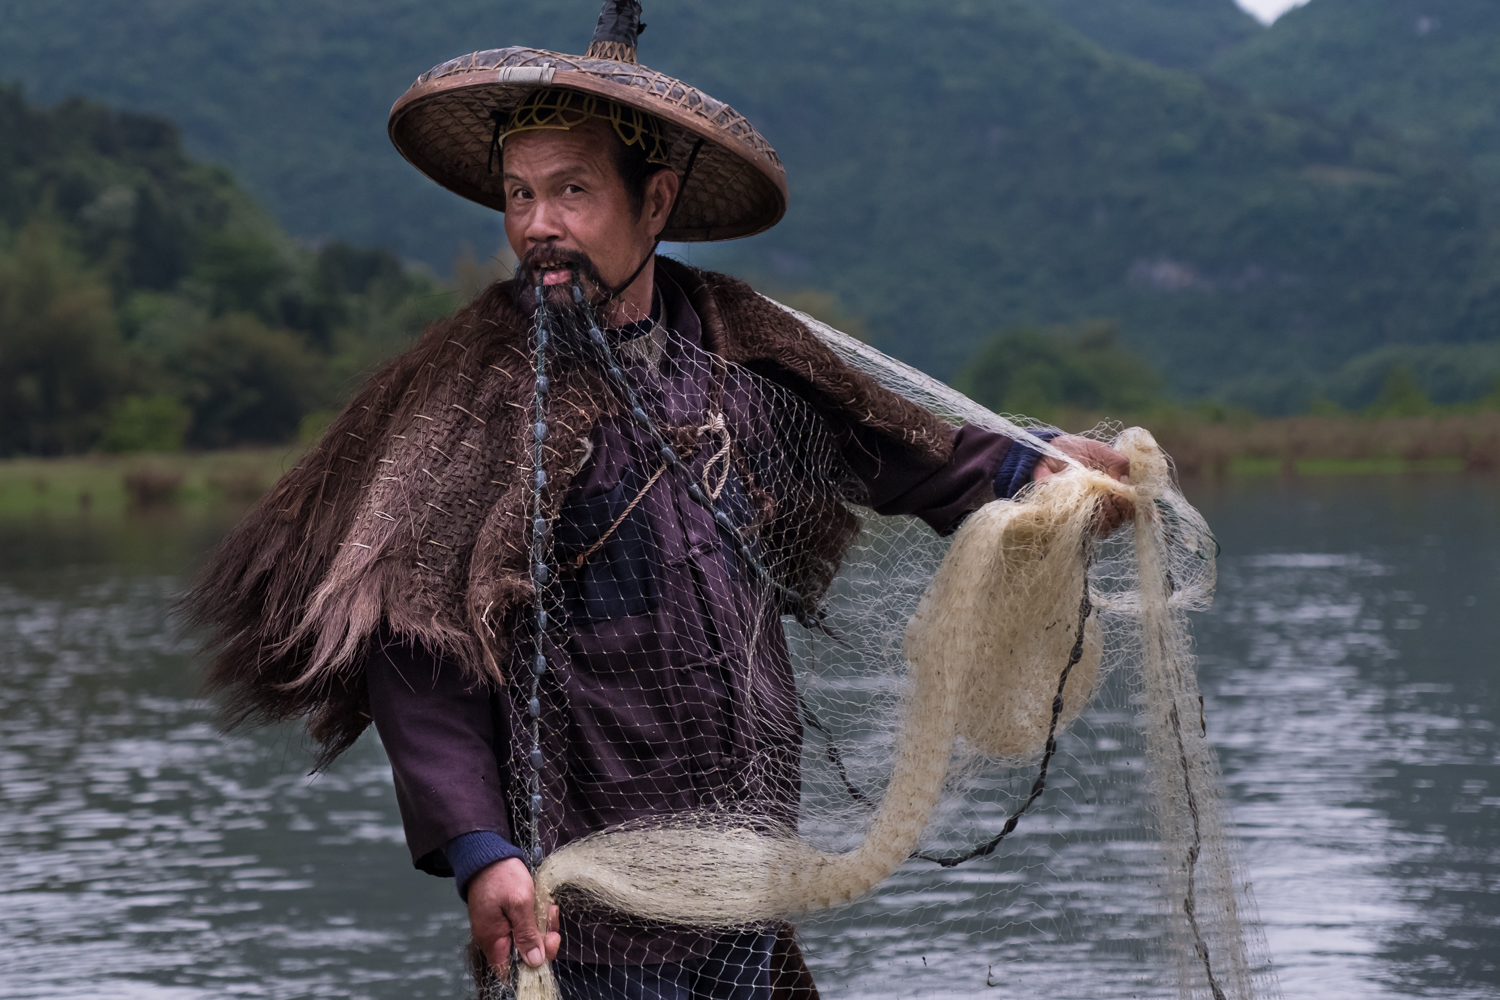 Mr. Hong prepares the fishing net